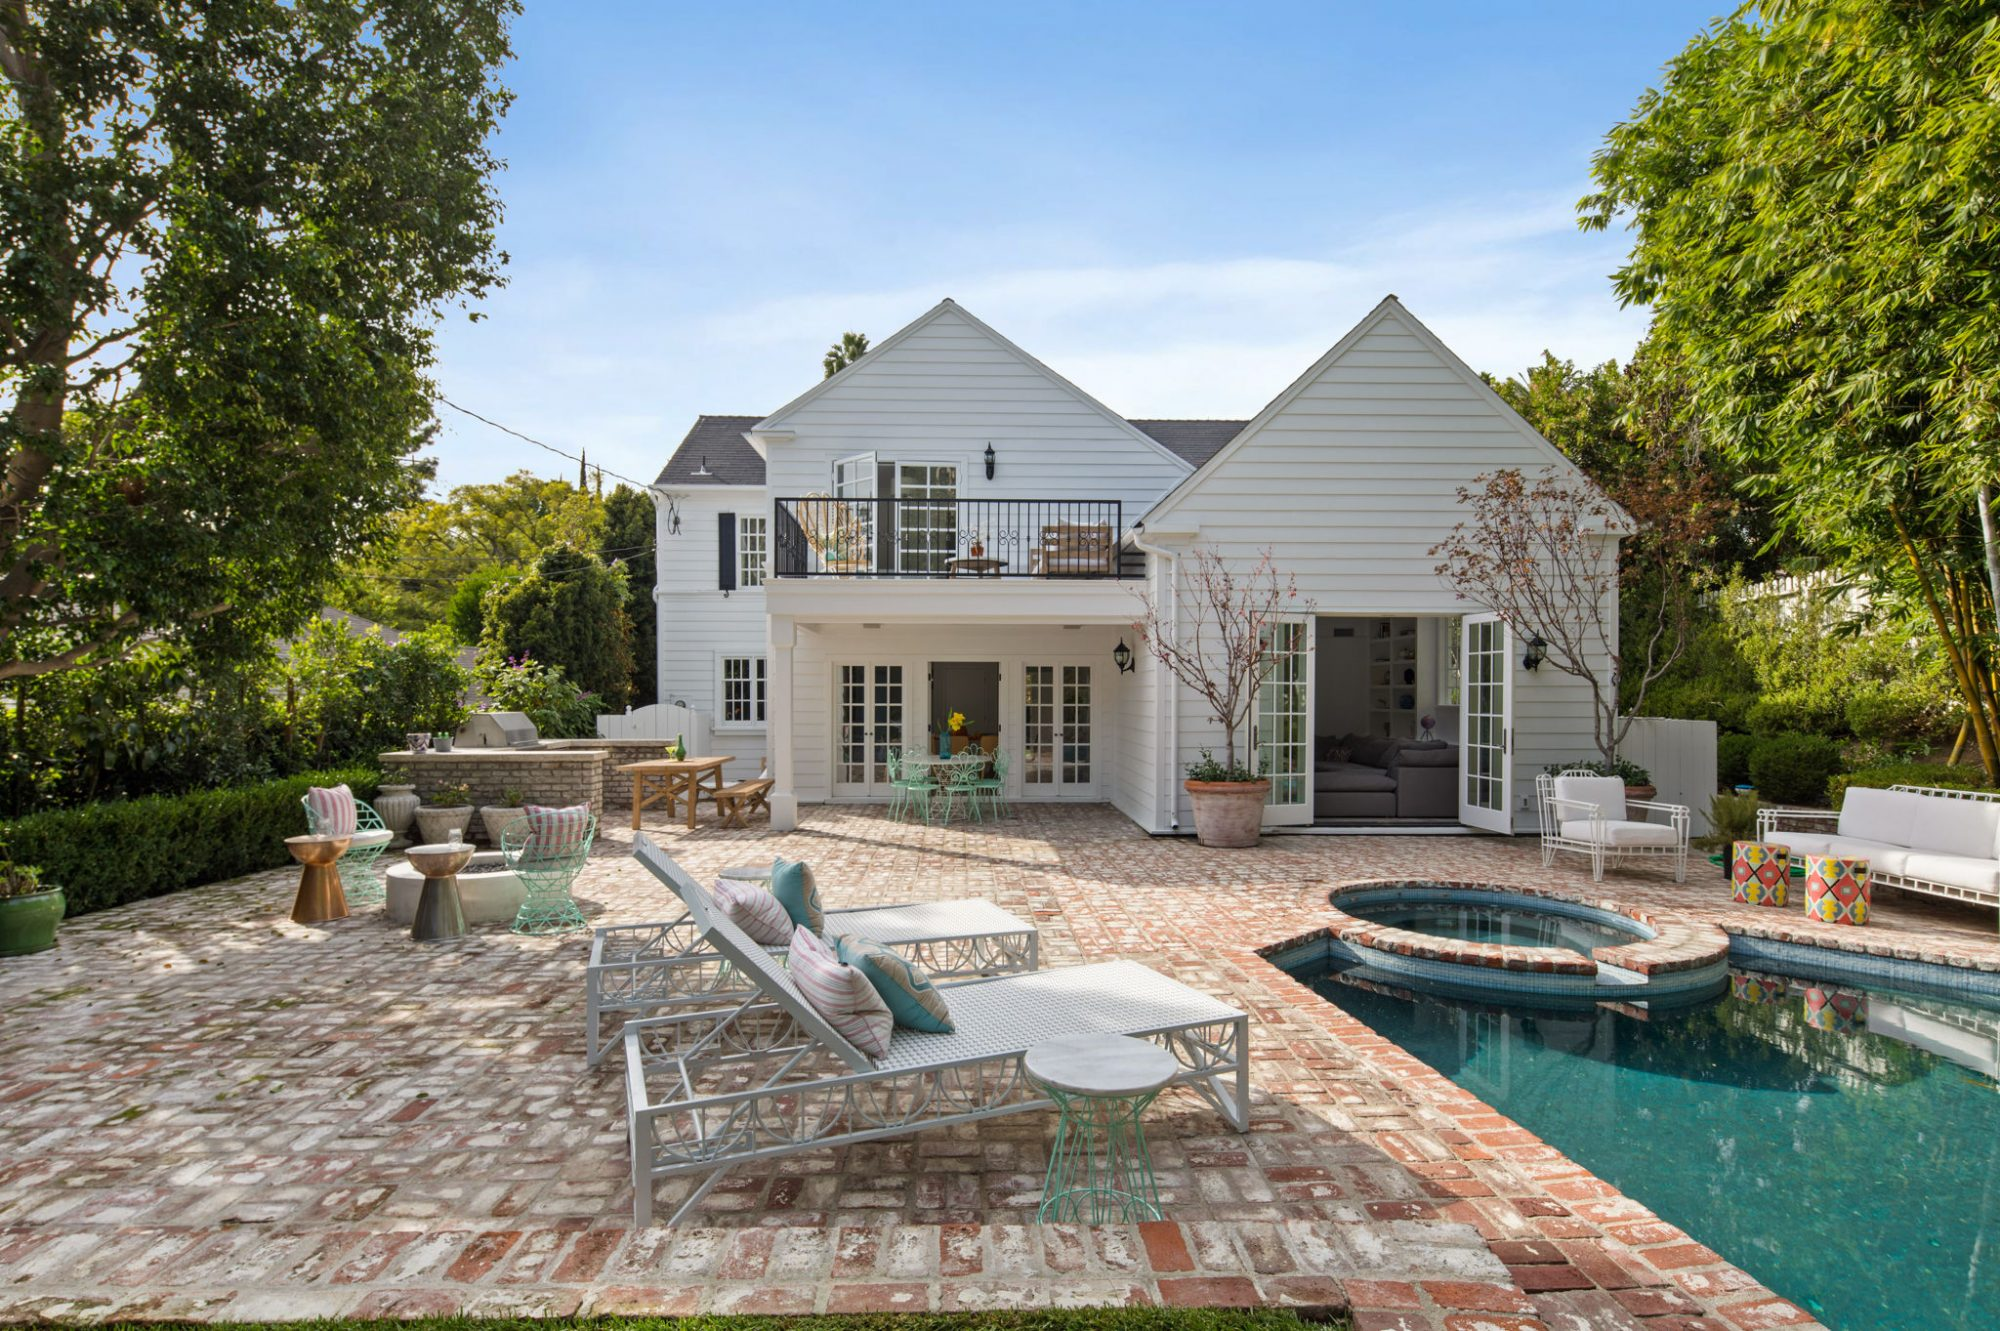 Bette Midler and George Lucas Once Called This California Charmer Home—And Now You Can, Too